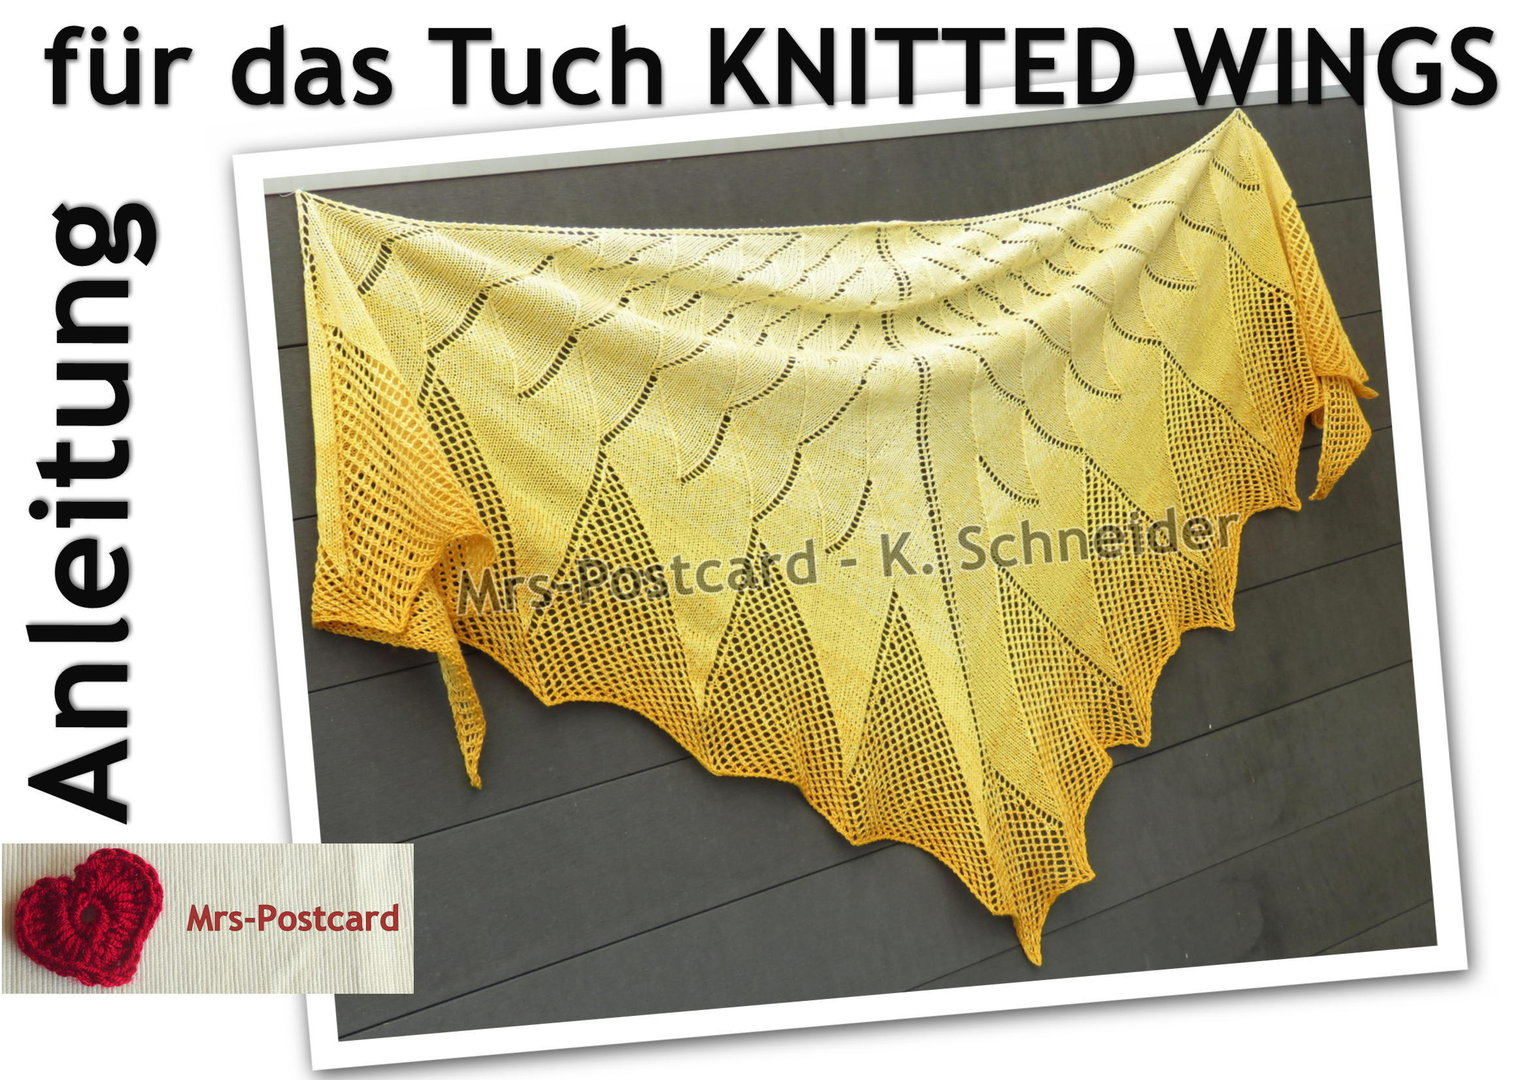 KNITTED WINGS Tuch  -  Anleitung